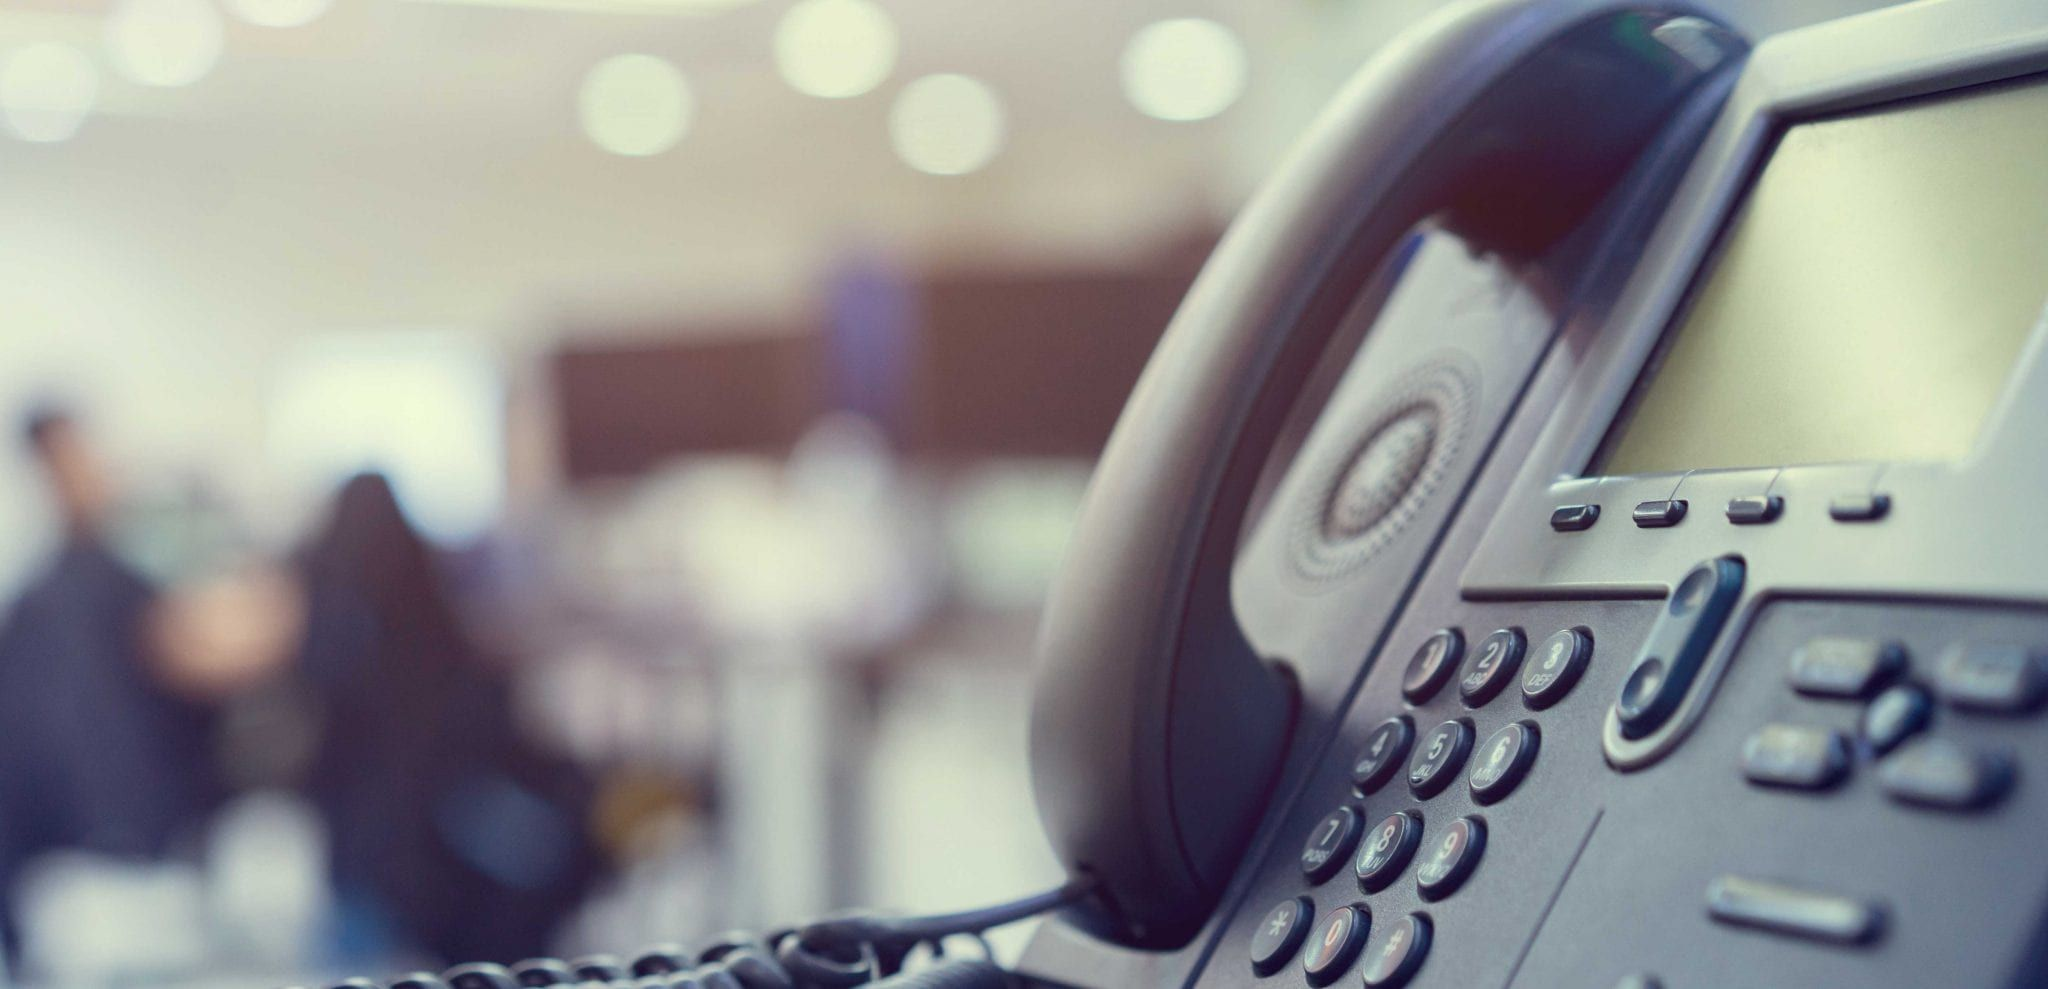 Lack of privacy for phone calls in open concept office space